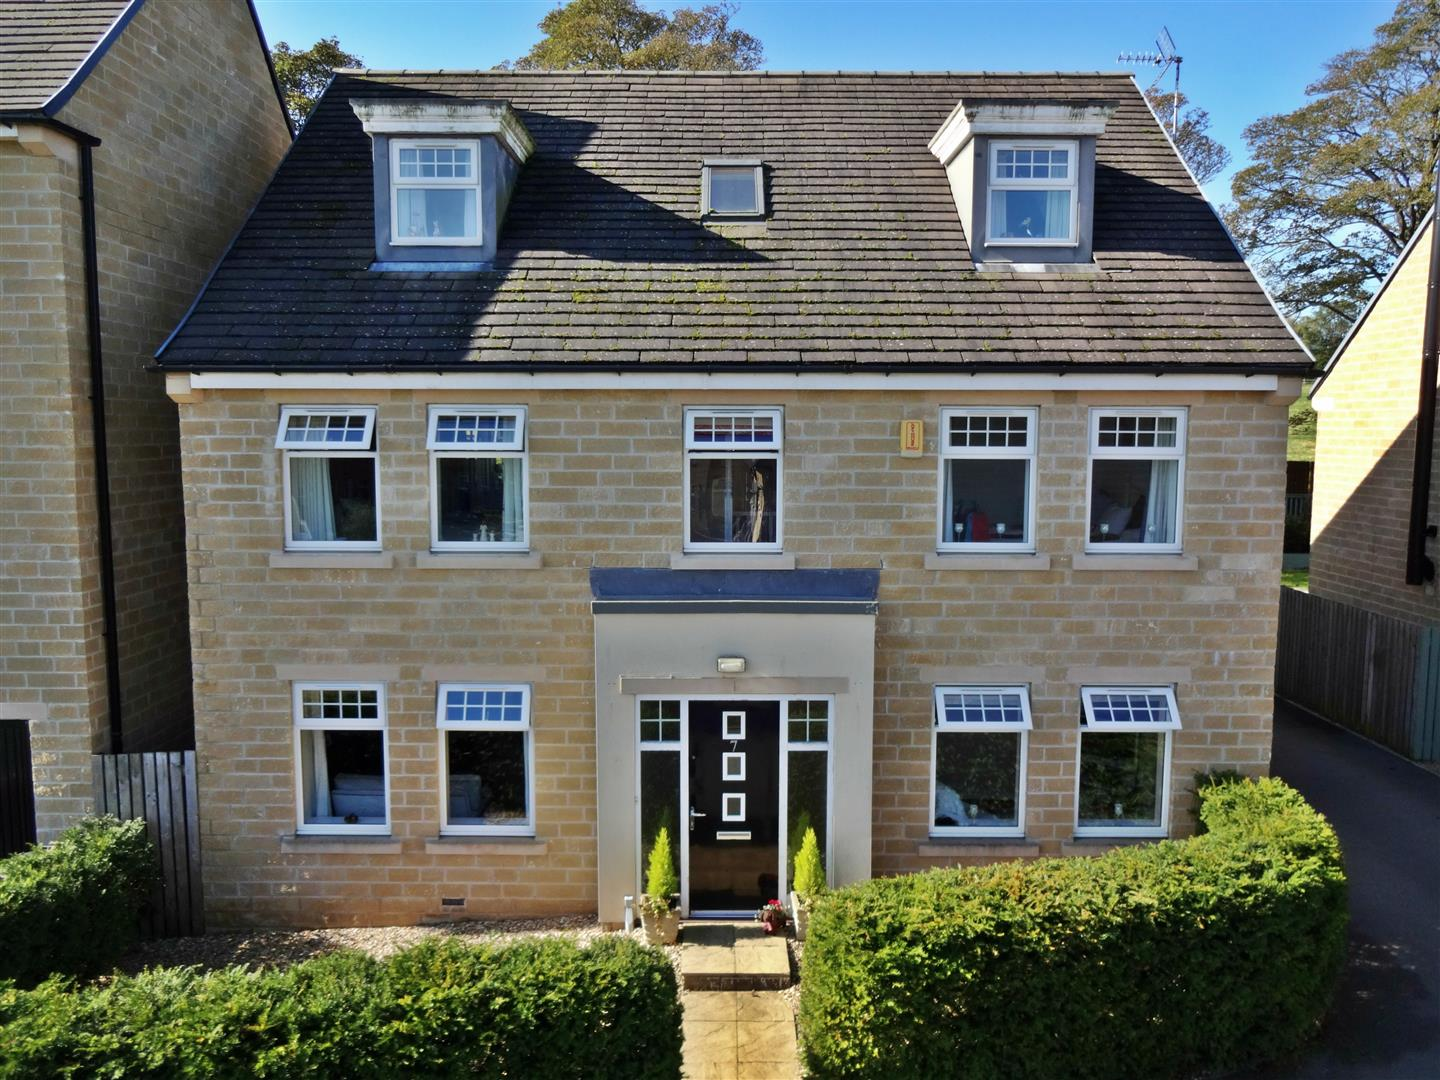 Beamsley Court, Menston, LS29 6FL